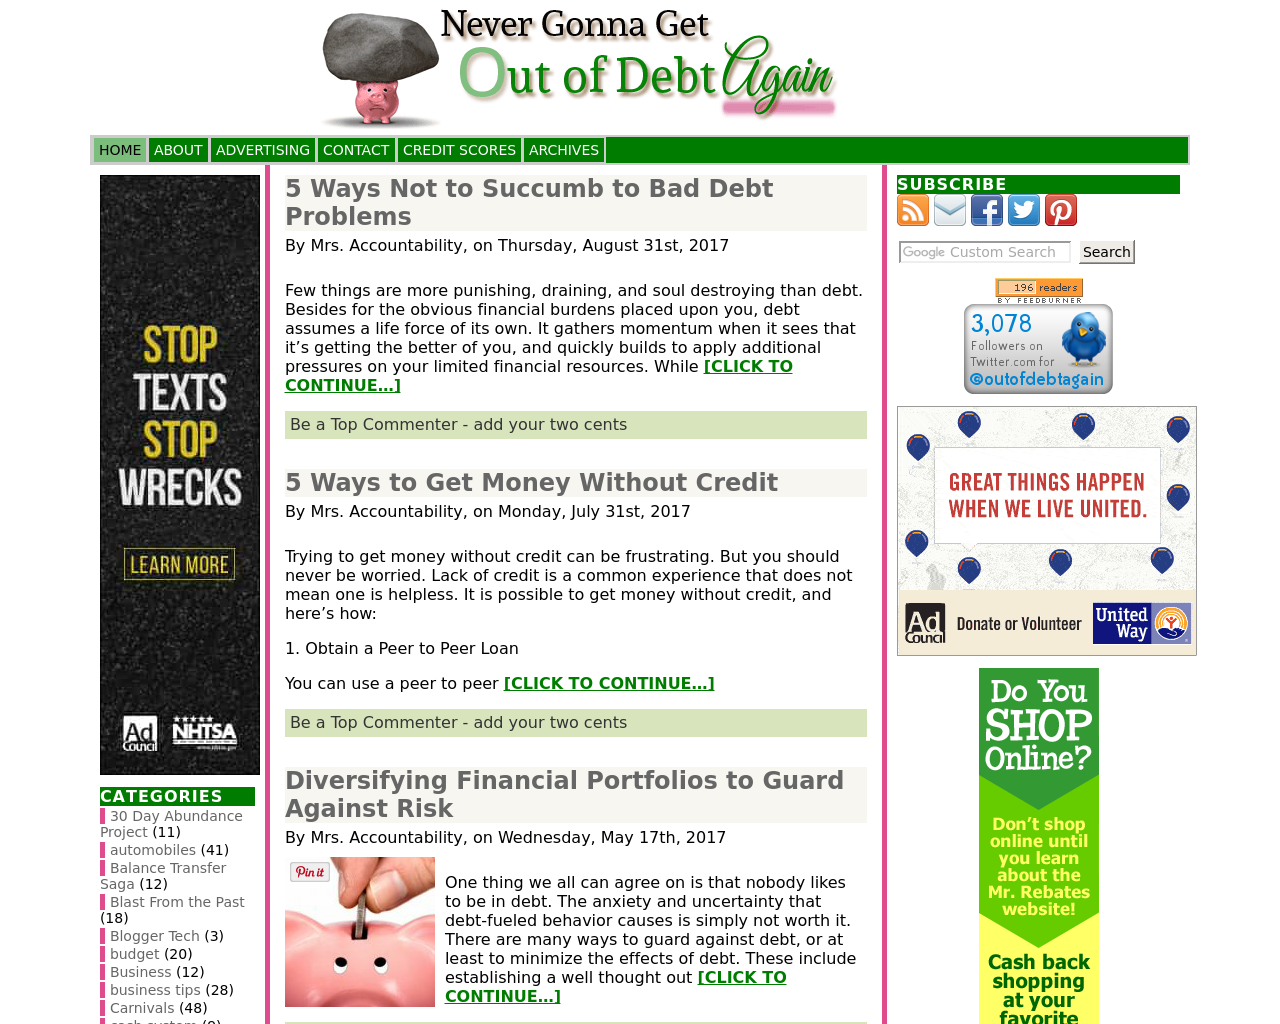 Never-Gonna-Get-Out-Of-Debt-Again-Advertising-Reviews-Pricing